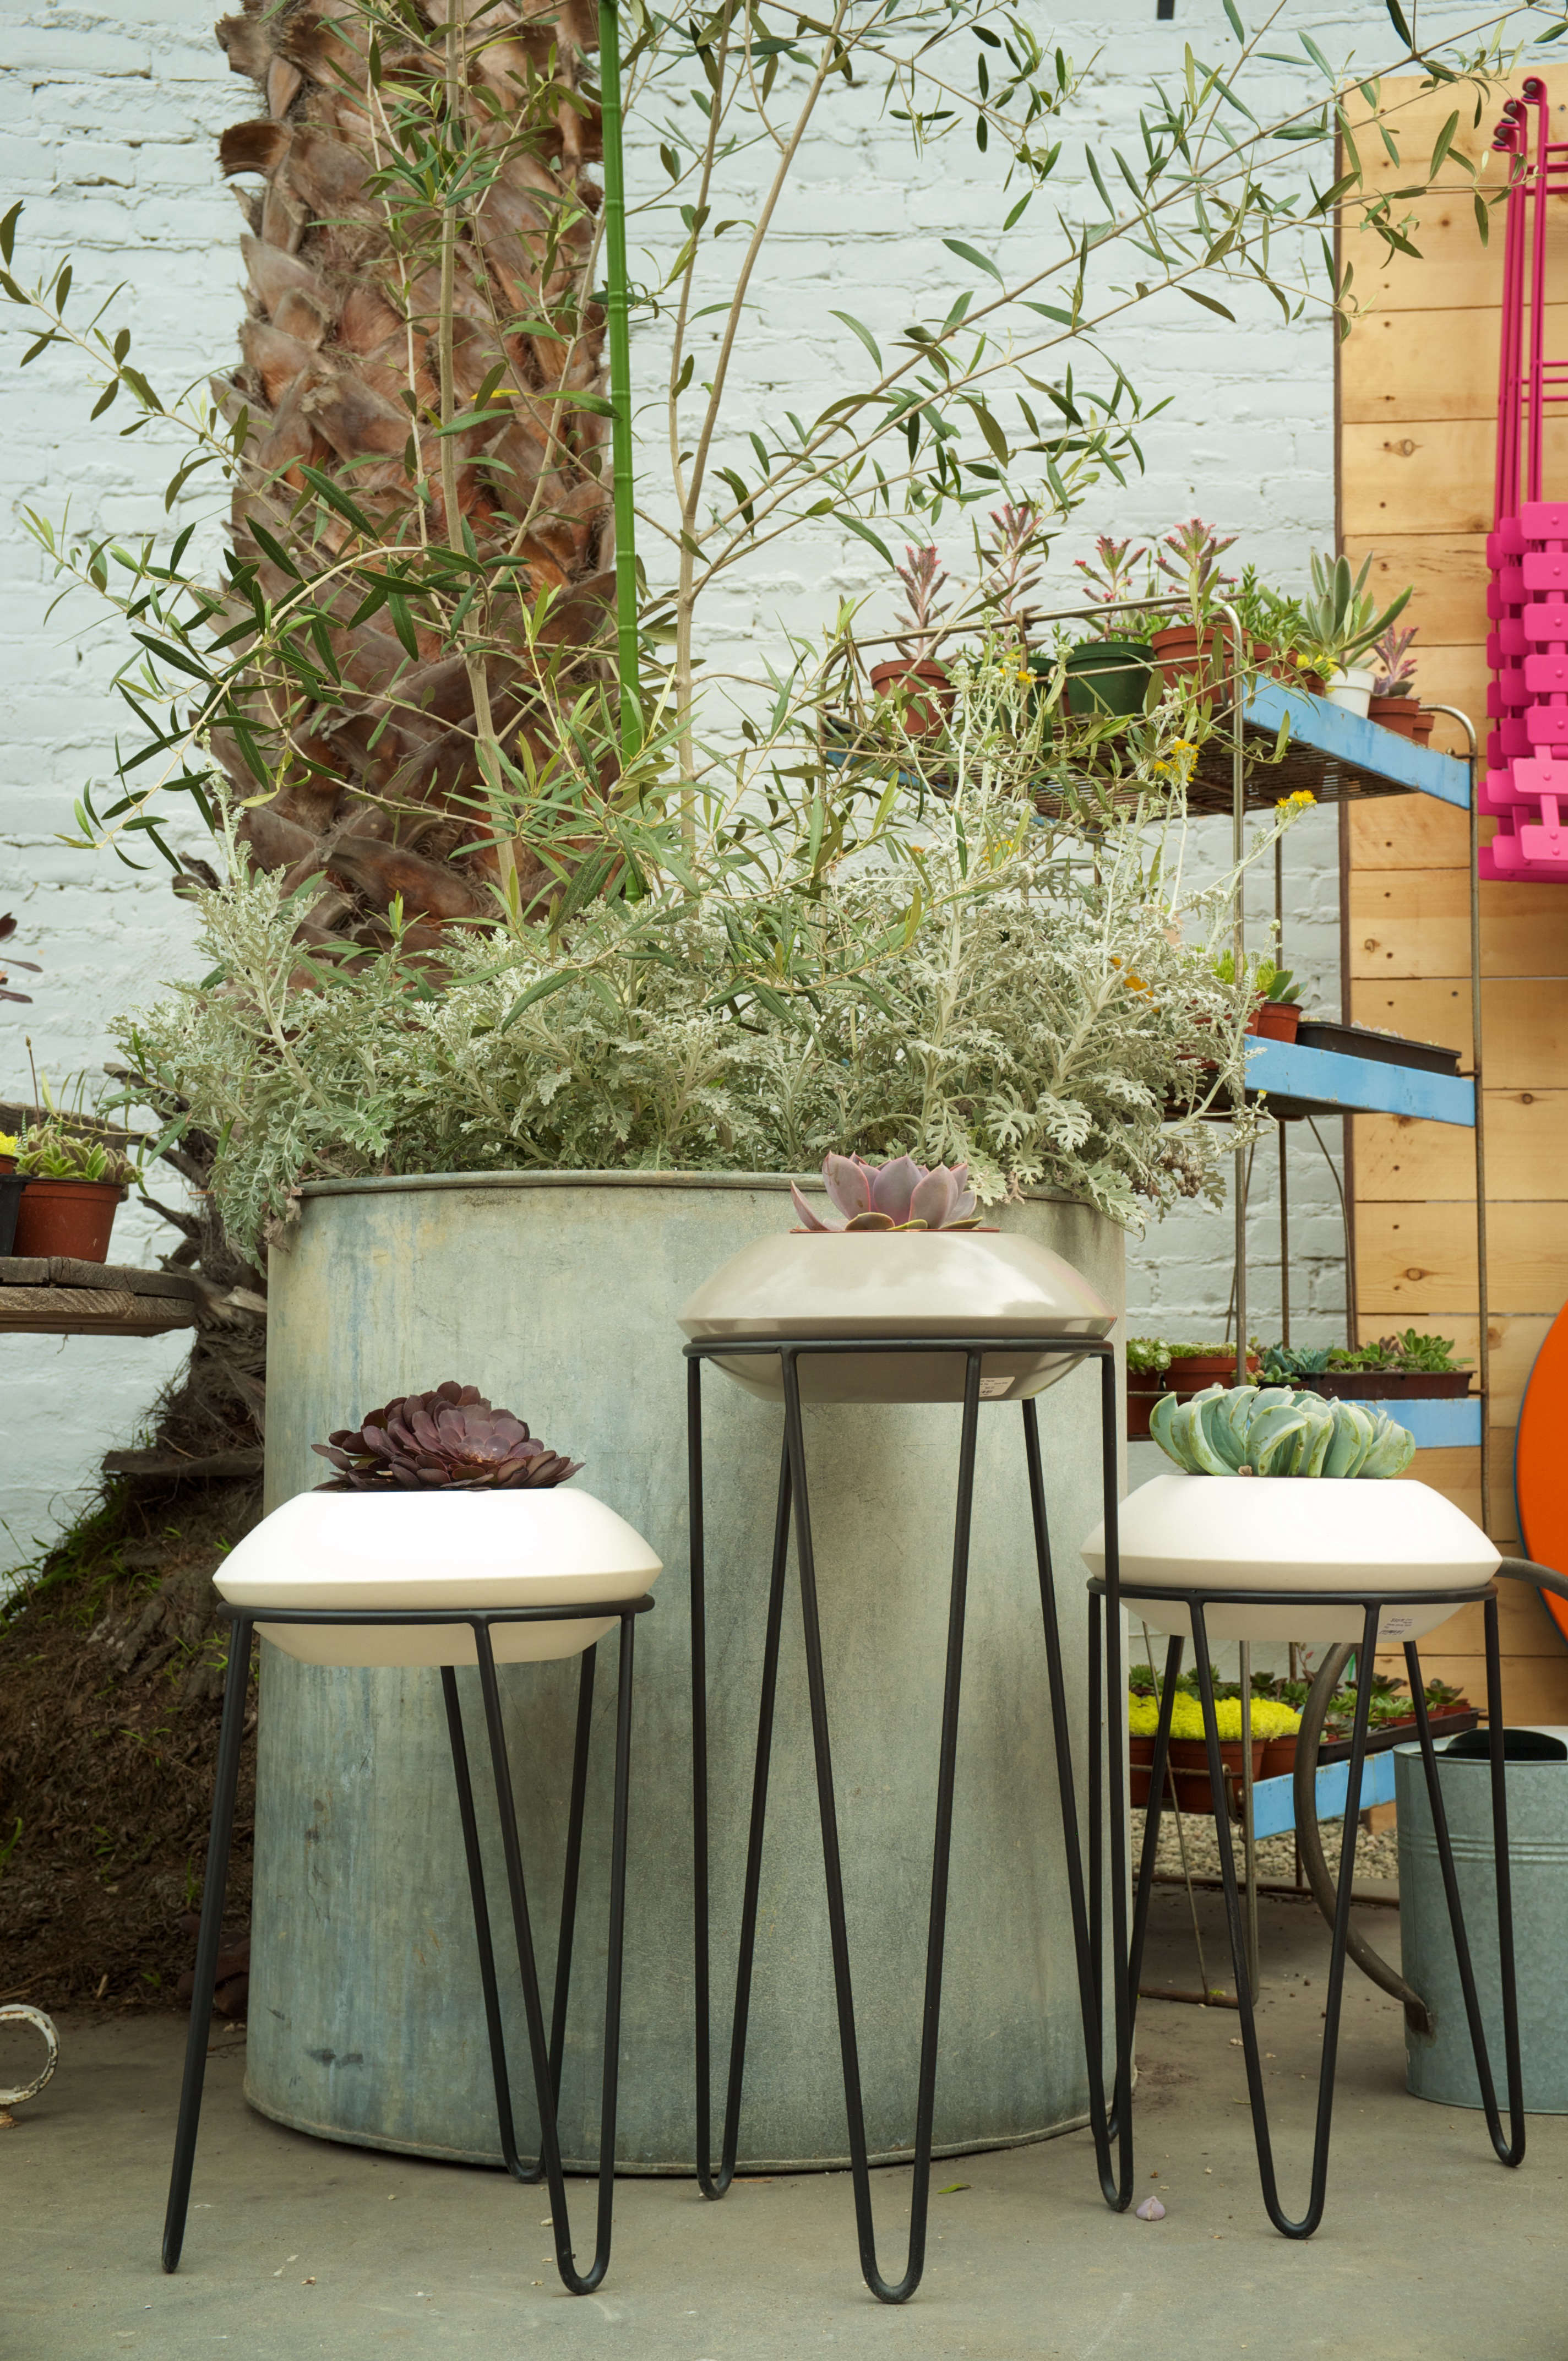 Shopper S Diary New Outpost For Potted In Santa Monica